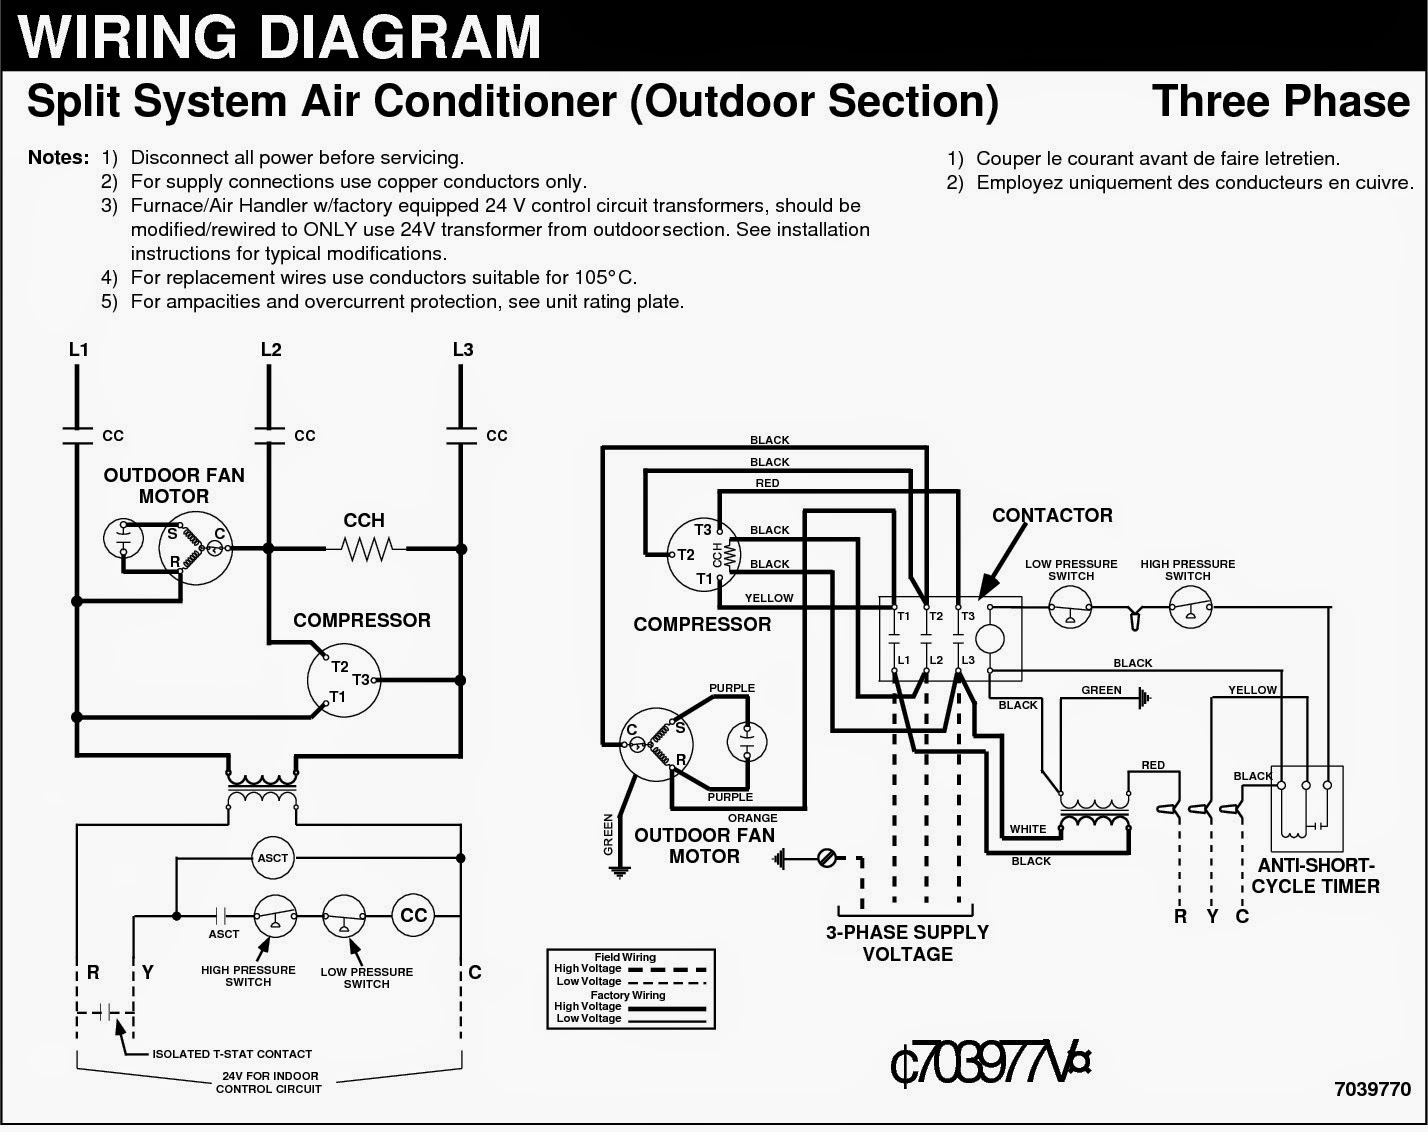 Trane Xl16i Wiring Diagram further Copeland Voltage Monitor Wiring Diagram moreover Trane Air Conditioner Parts Manual in addition 522311 Carrier Ac Heat Pump Runs Few Minutes Stops likewise HVAC Manuals Air Conditioners Boilers Furnaces. on trane air conditioners wiring